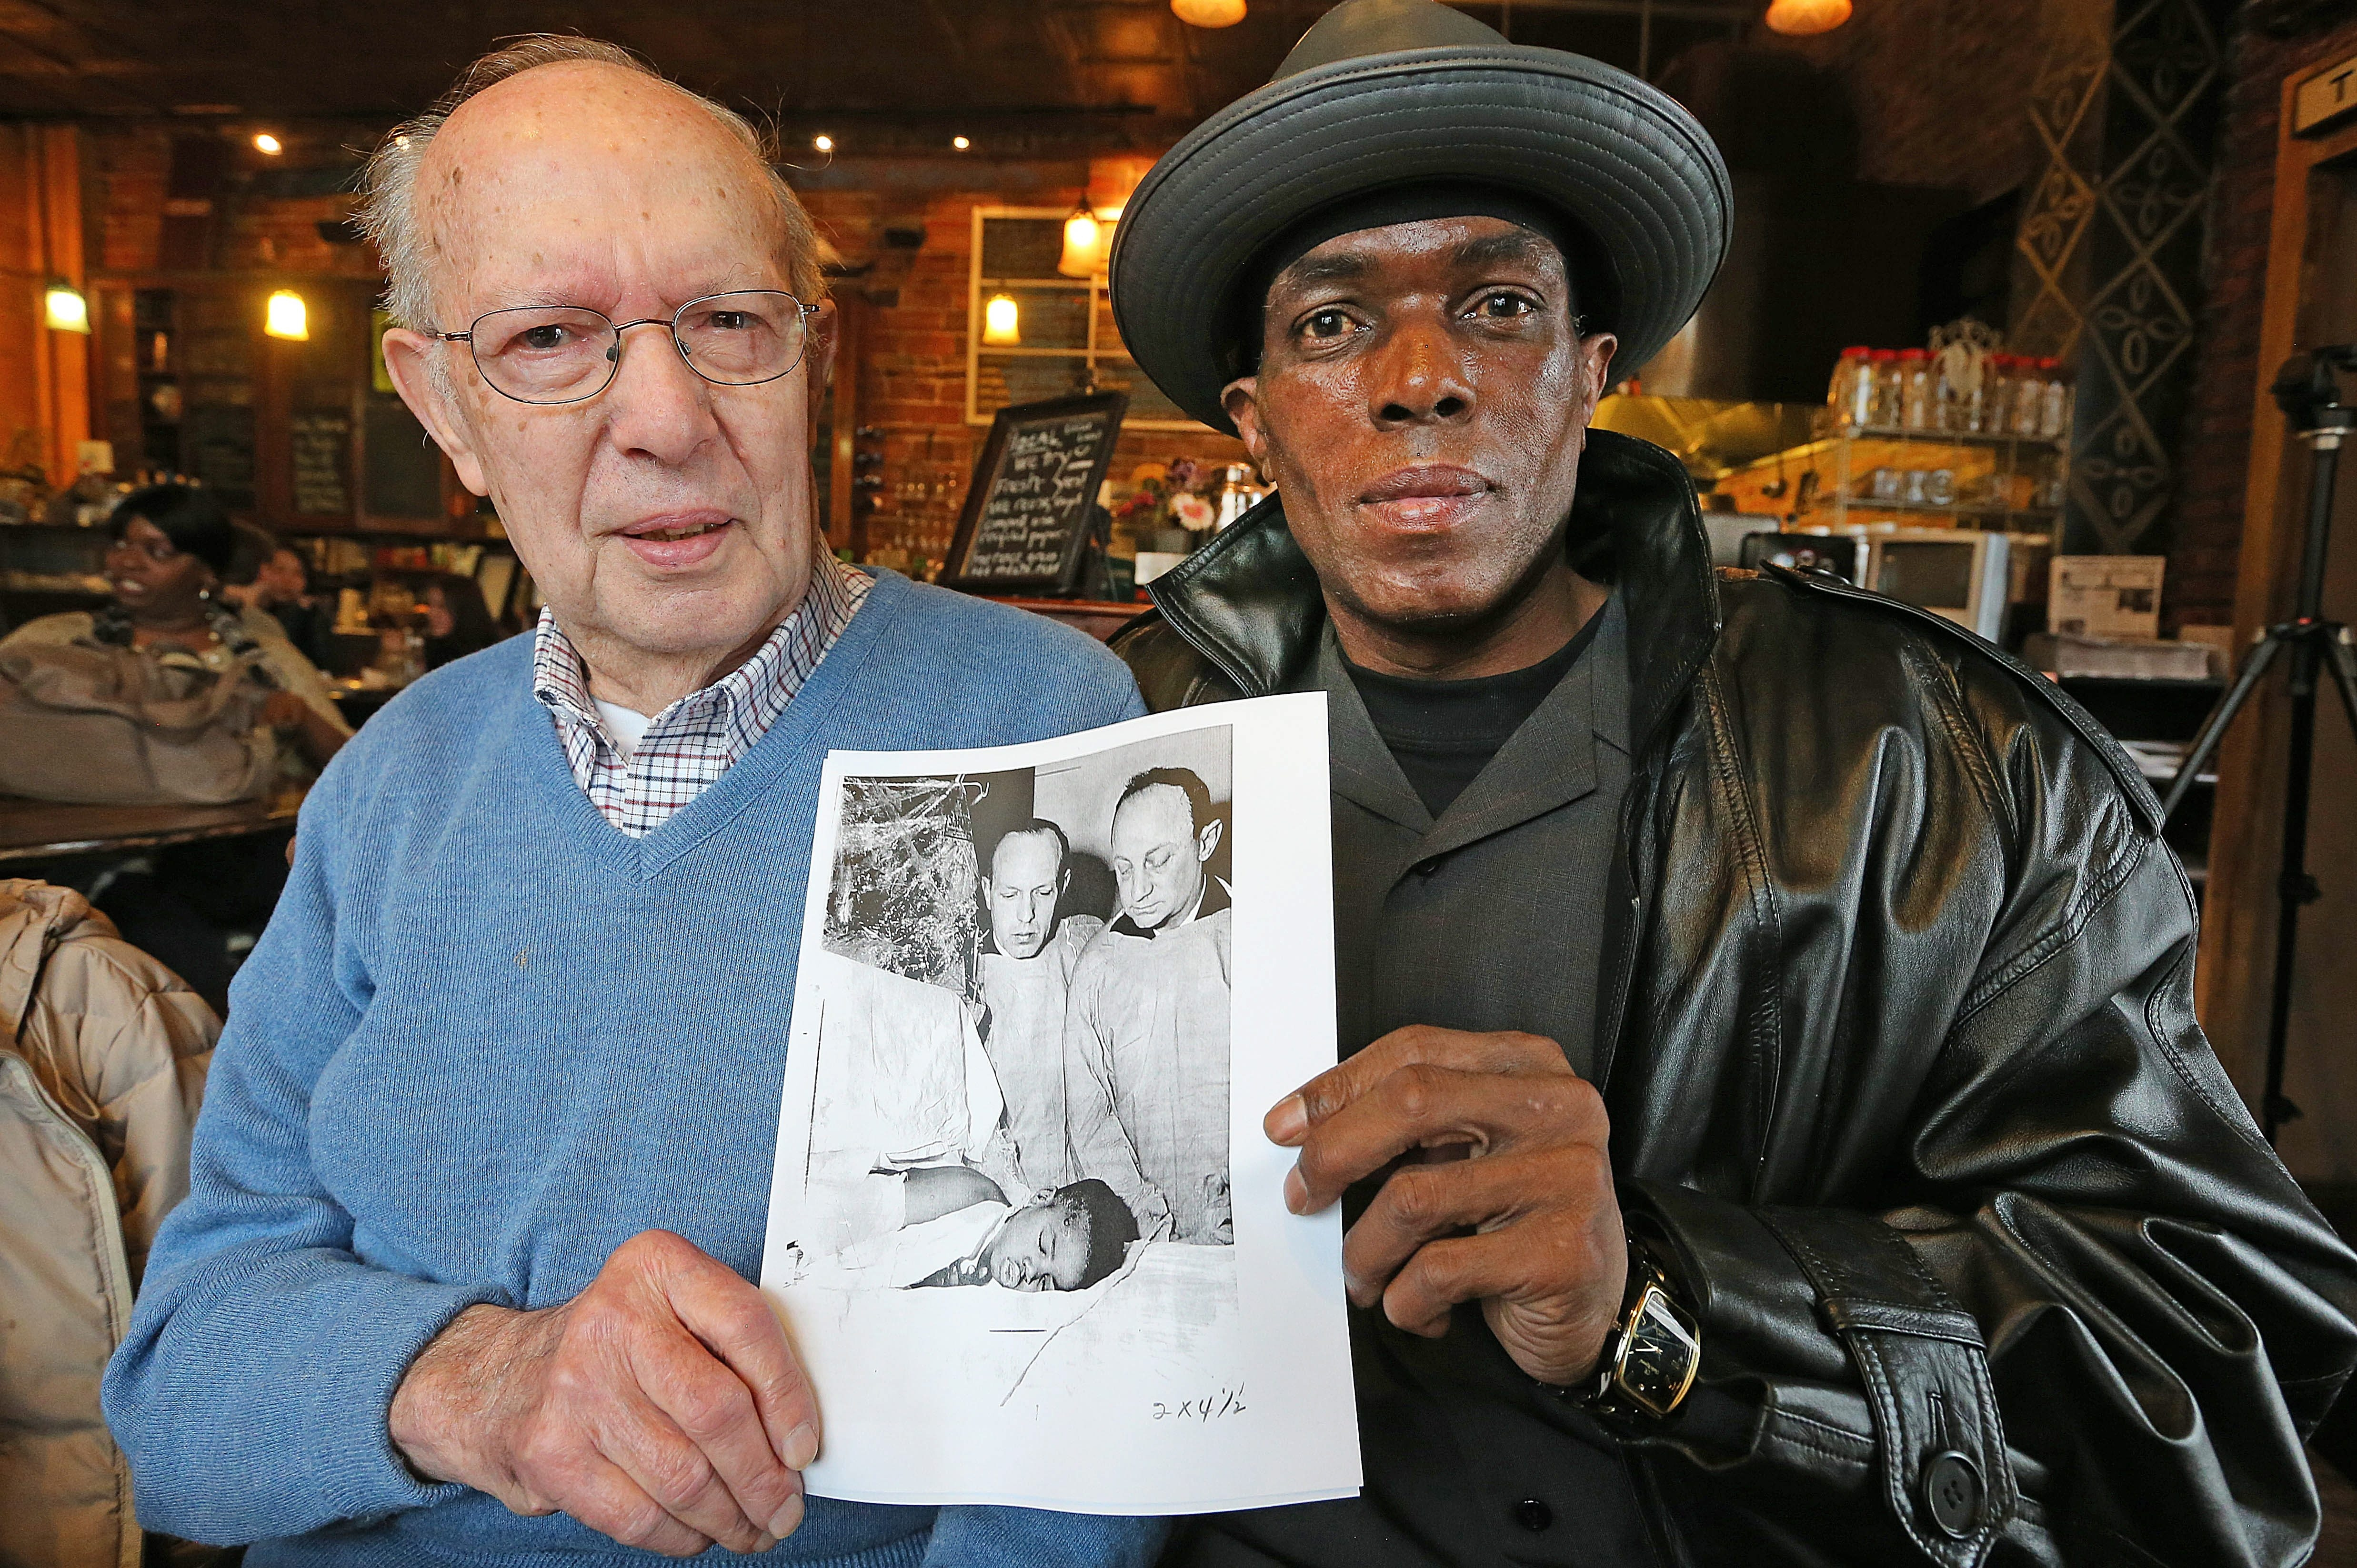 Patrick Weatherspoon, right, meets retired firefighter Vincent Fildes, left, at Sweetness 7 Cafe on Grant St. on Friday, Feb. 21, 2014.  Fildes rescued Weatherspoon from a house fire in 1968 and this is the first time they've reunited since the fire that took his sister at 397 Sherman St in Buffalo. They were looking at a photo by Buffalo News staff photographer Bill Dyviniak of the next day visit at the hospital where the youngster was recovering.   (Robert Kirkham/Buffalo News)